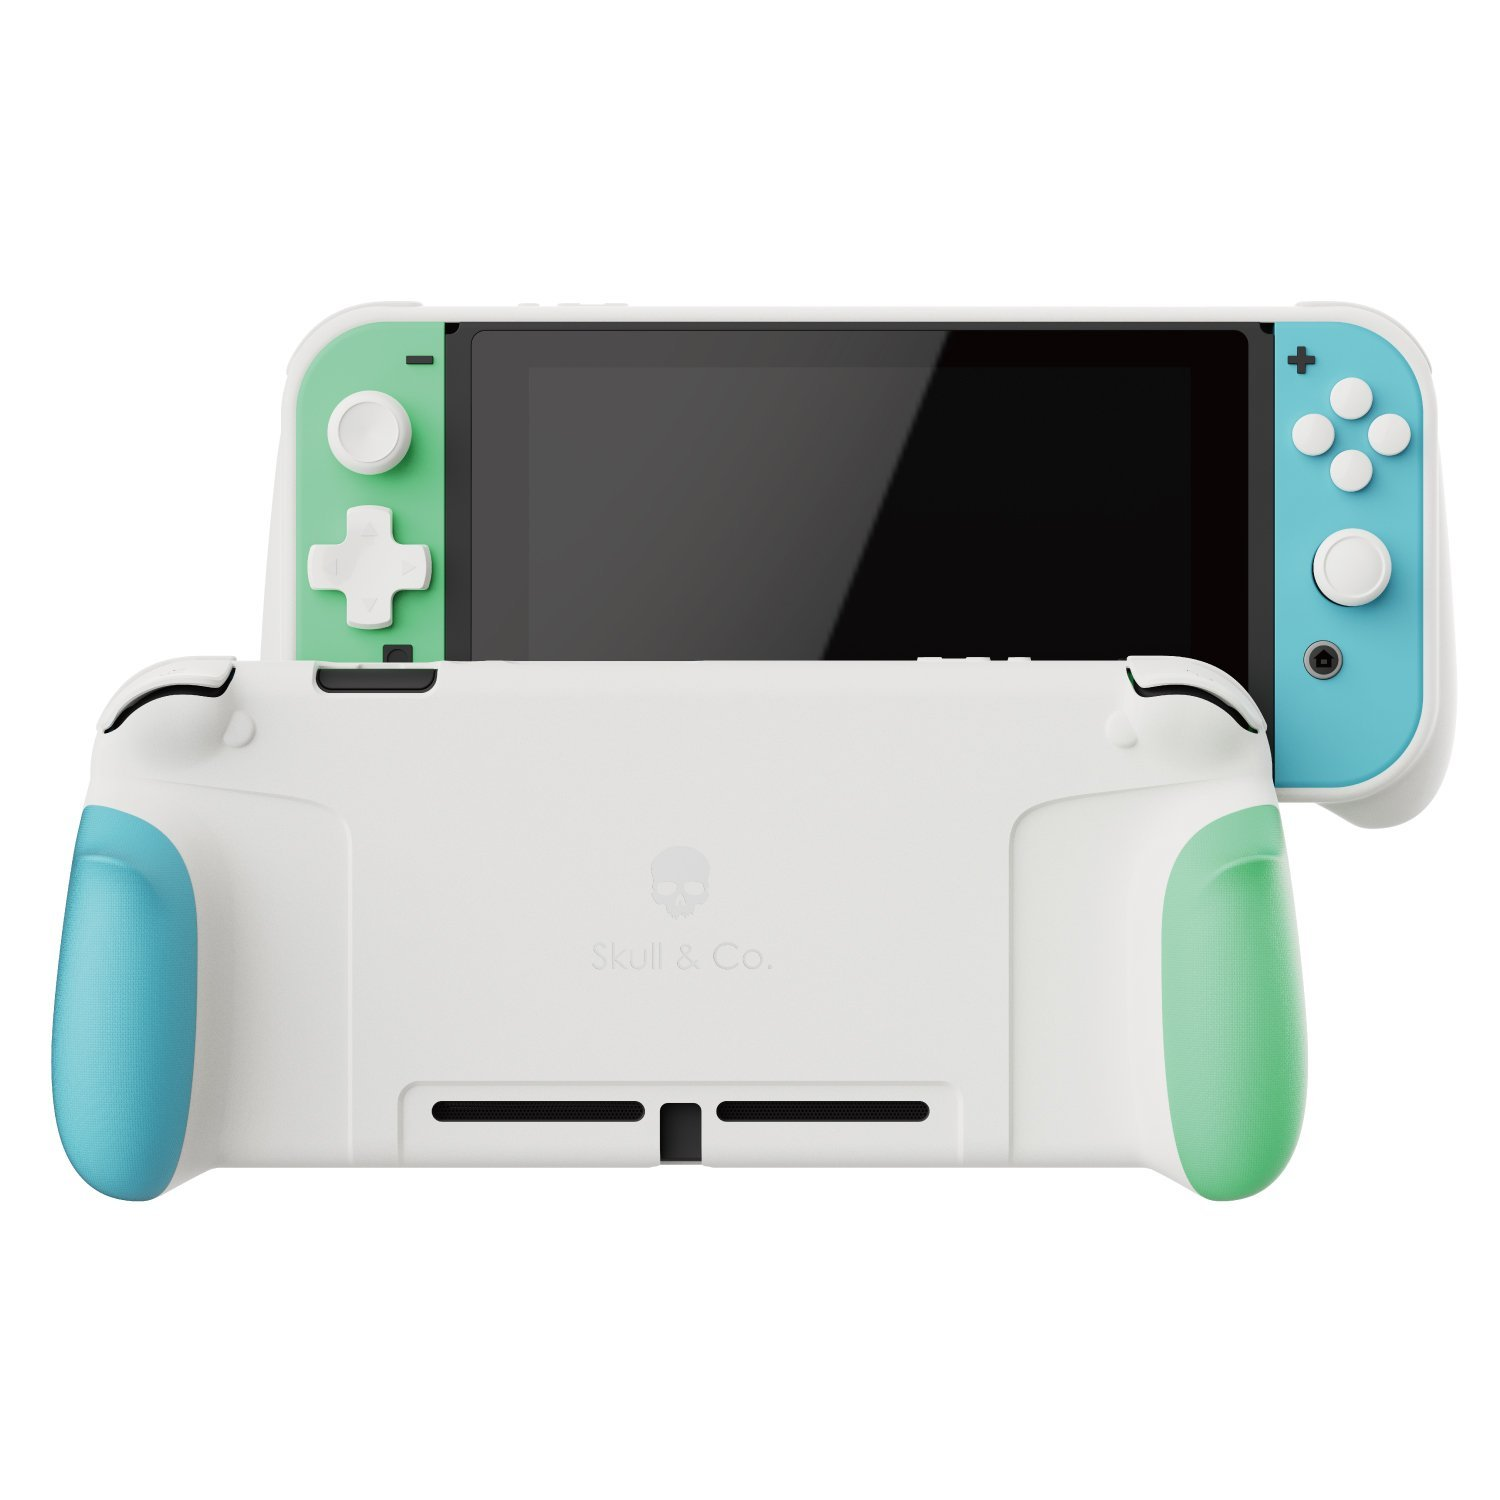 Skull & Co. Animal Crossing Limited Edition GripCase Review